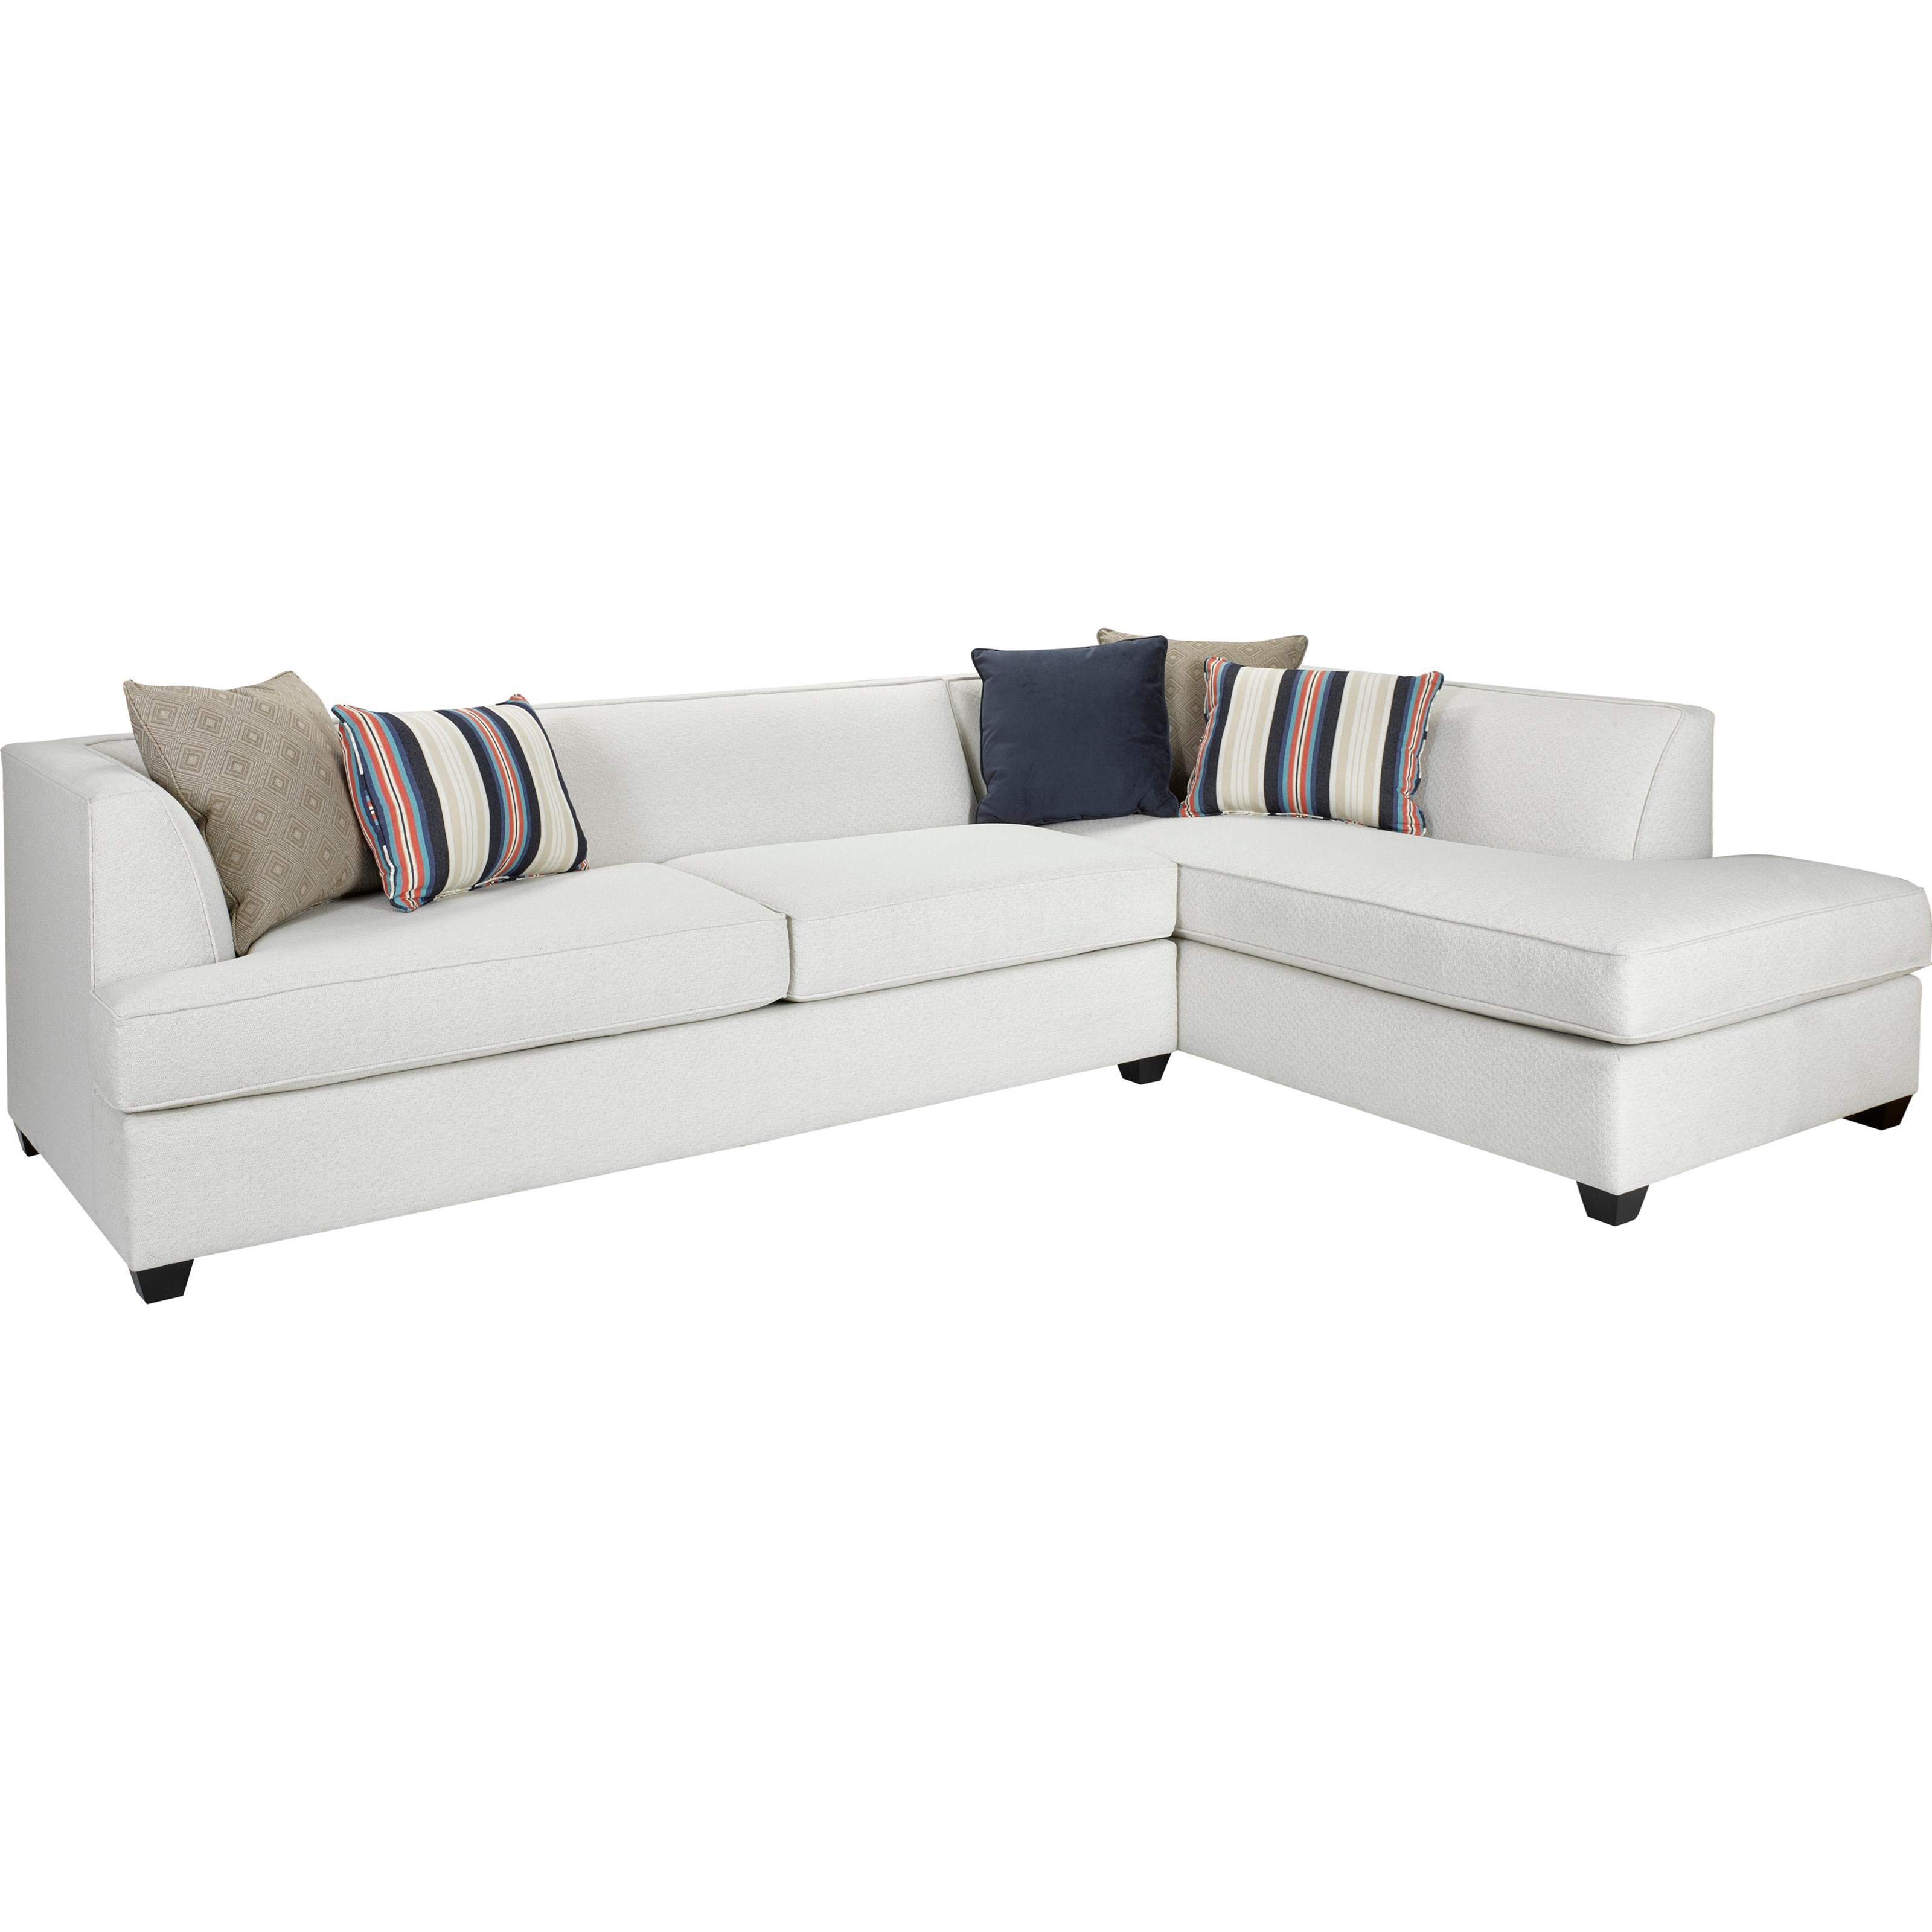 Broyhill Furniture Farida 2 Piece Sectional Sofa with RAF Chaise ...